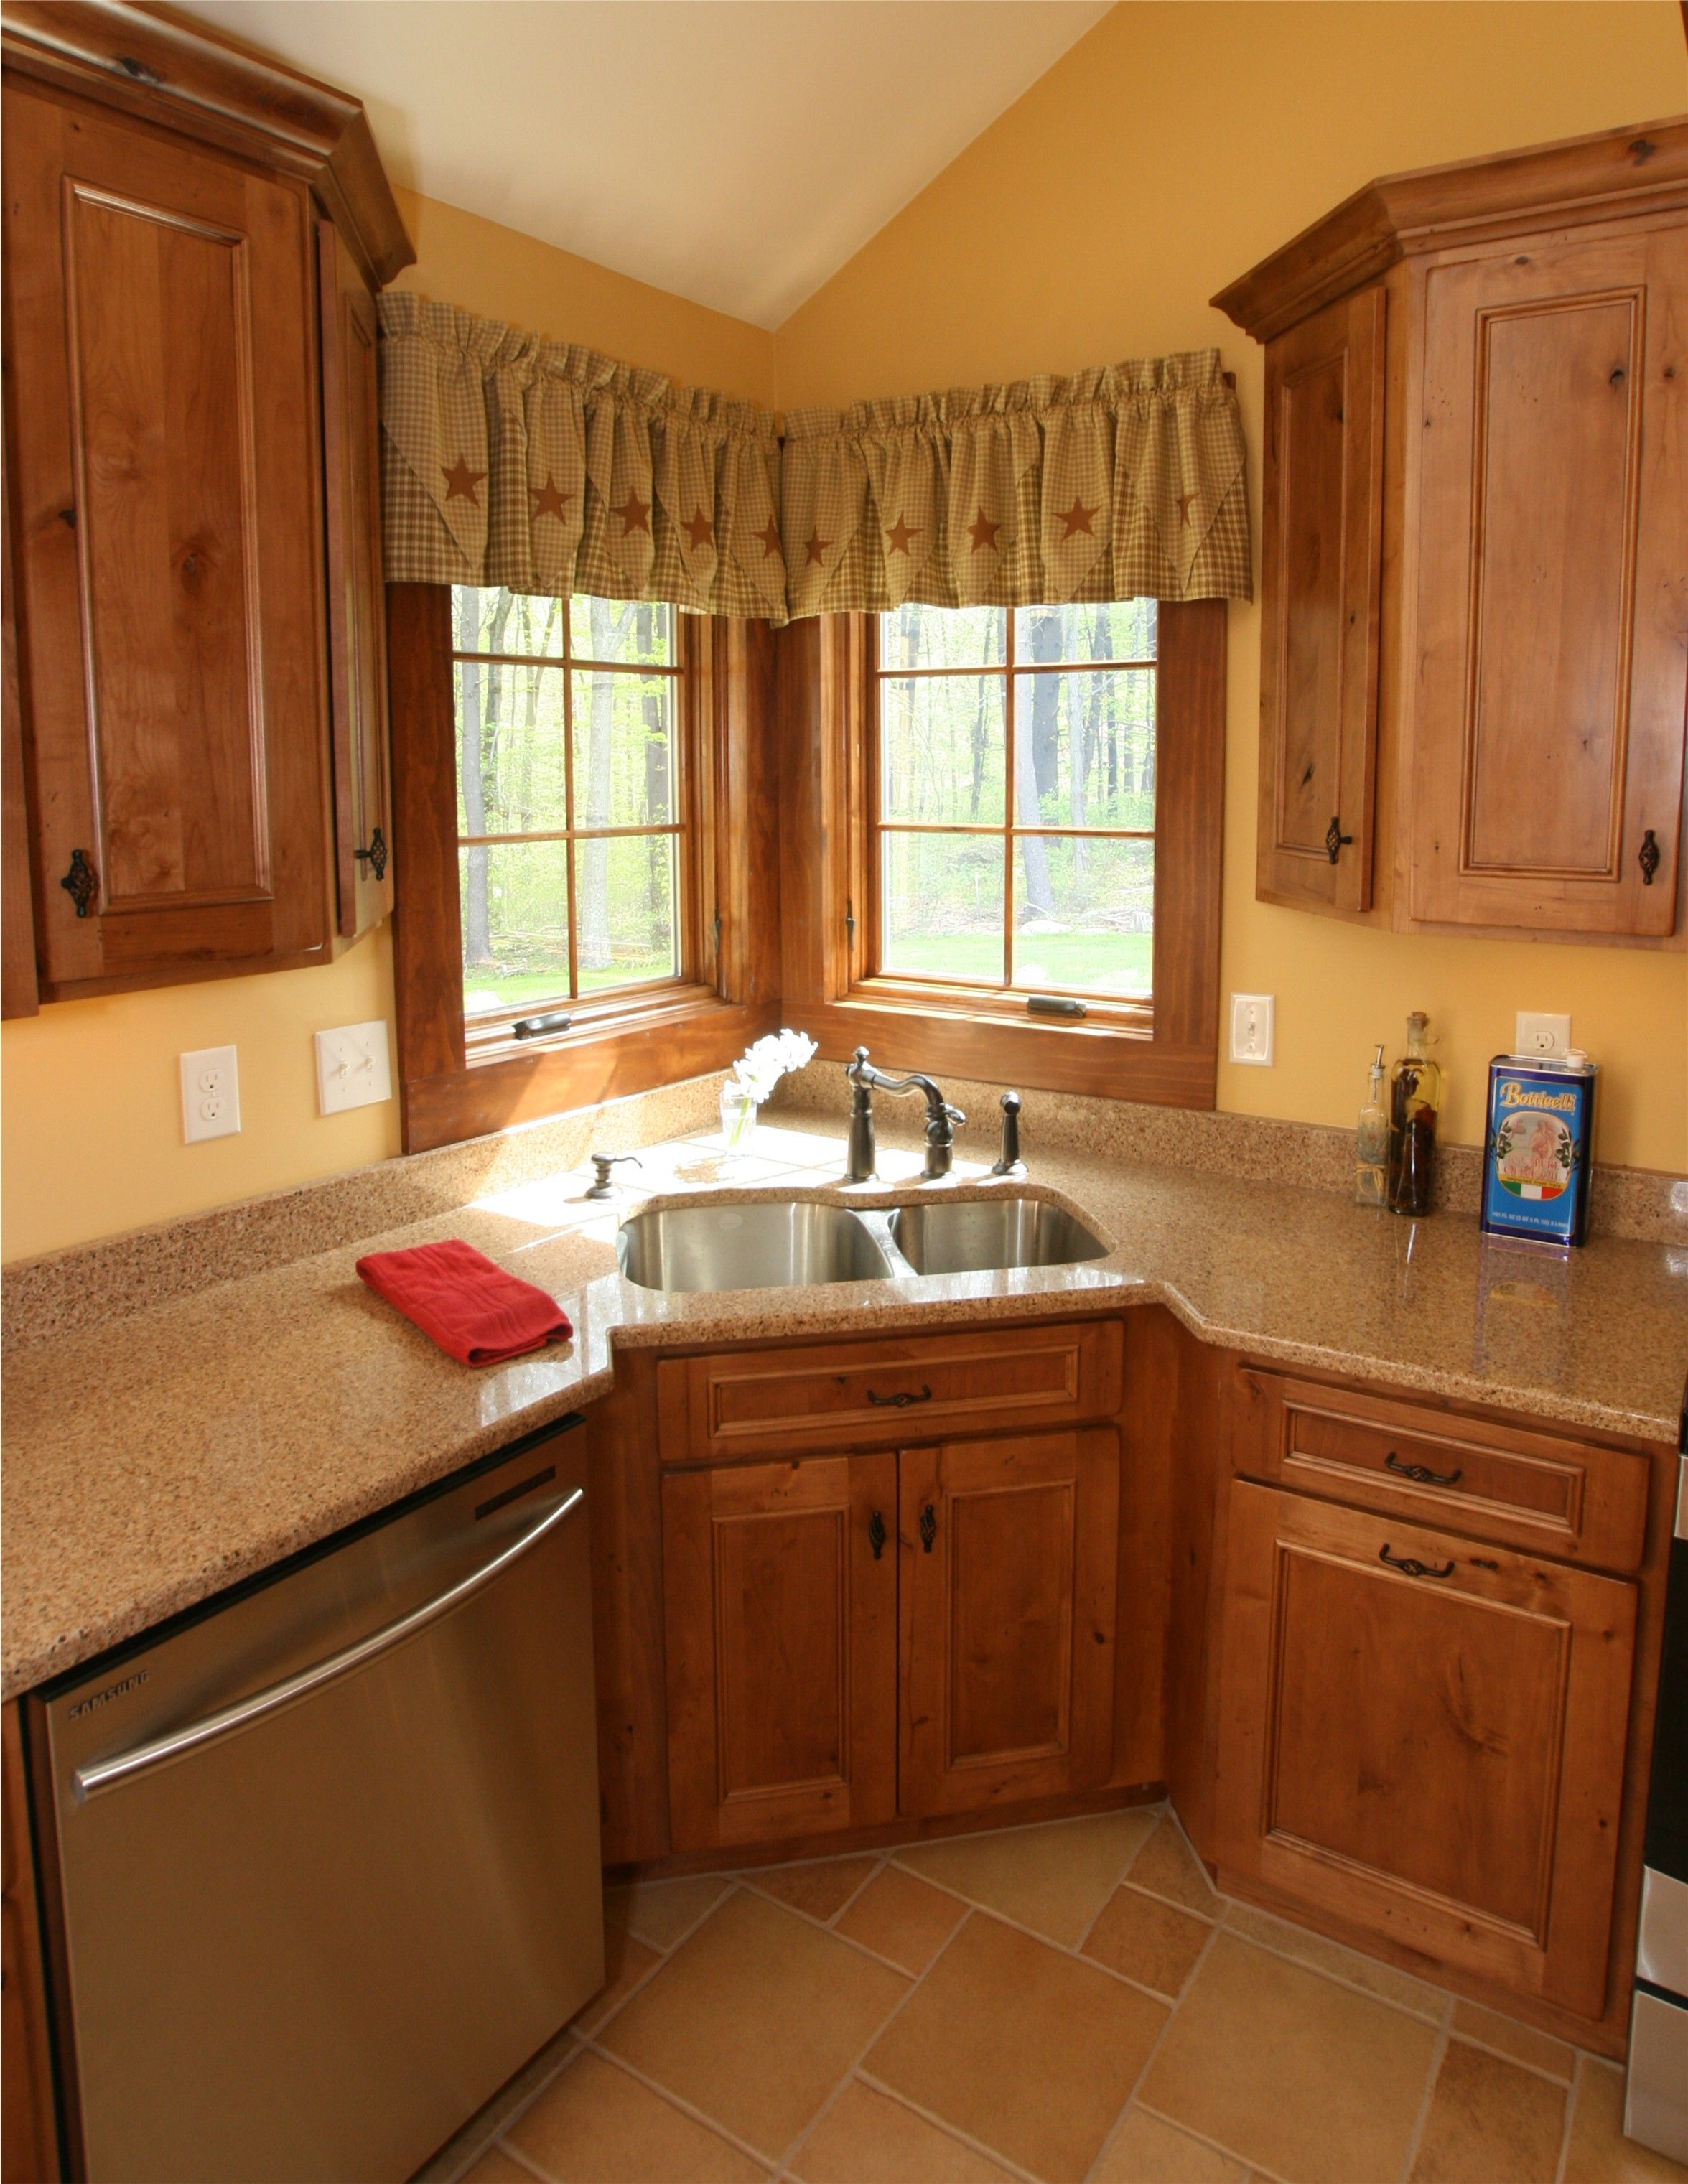 this is a beautiful showplace kitchen featuring our rustic alder